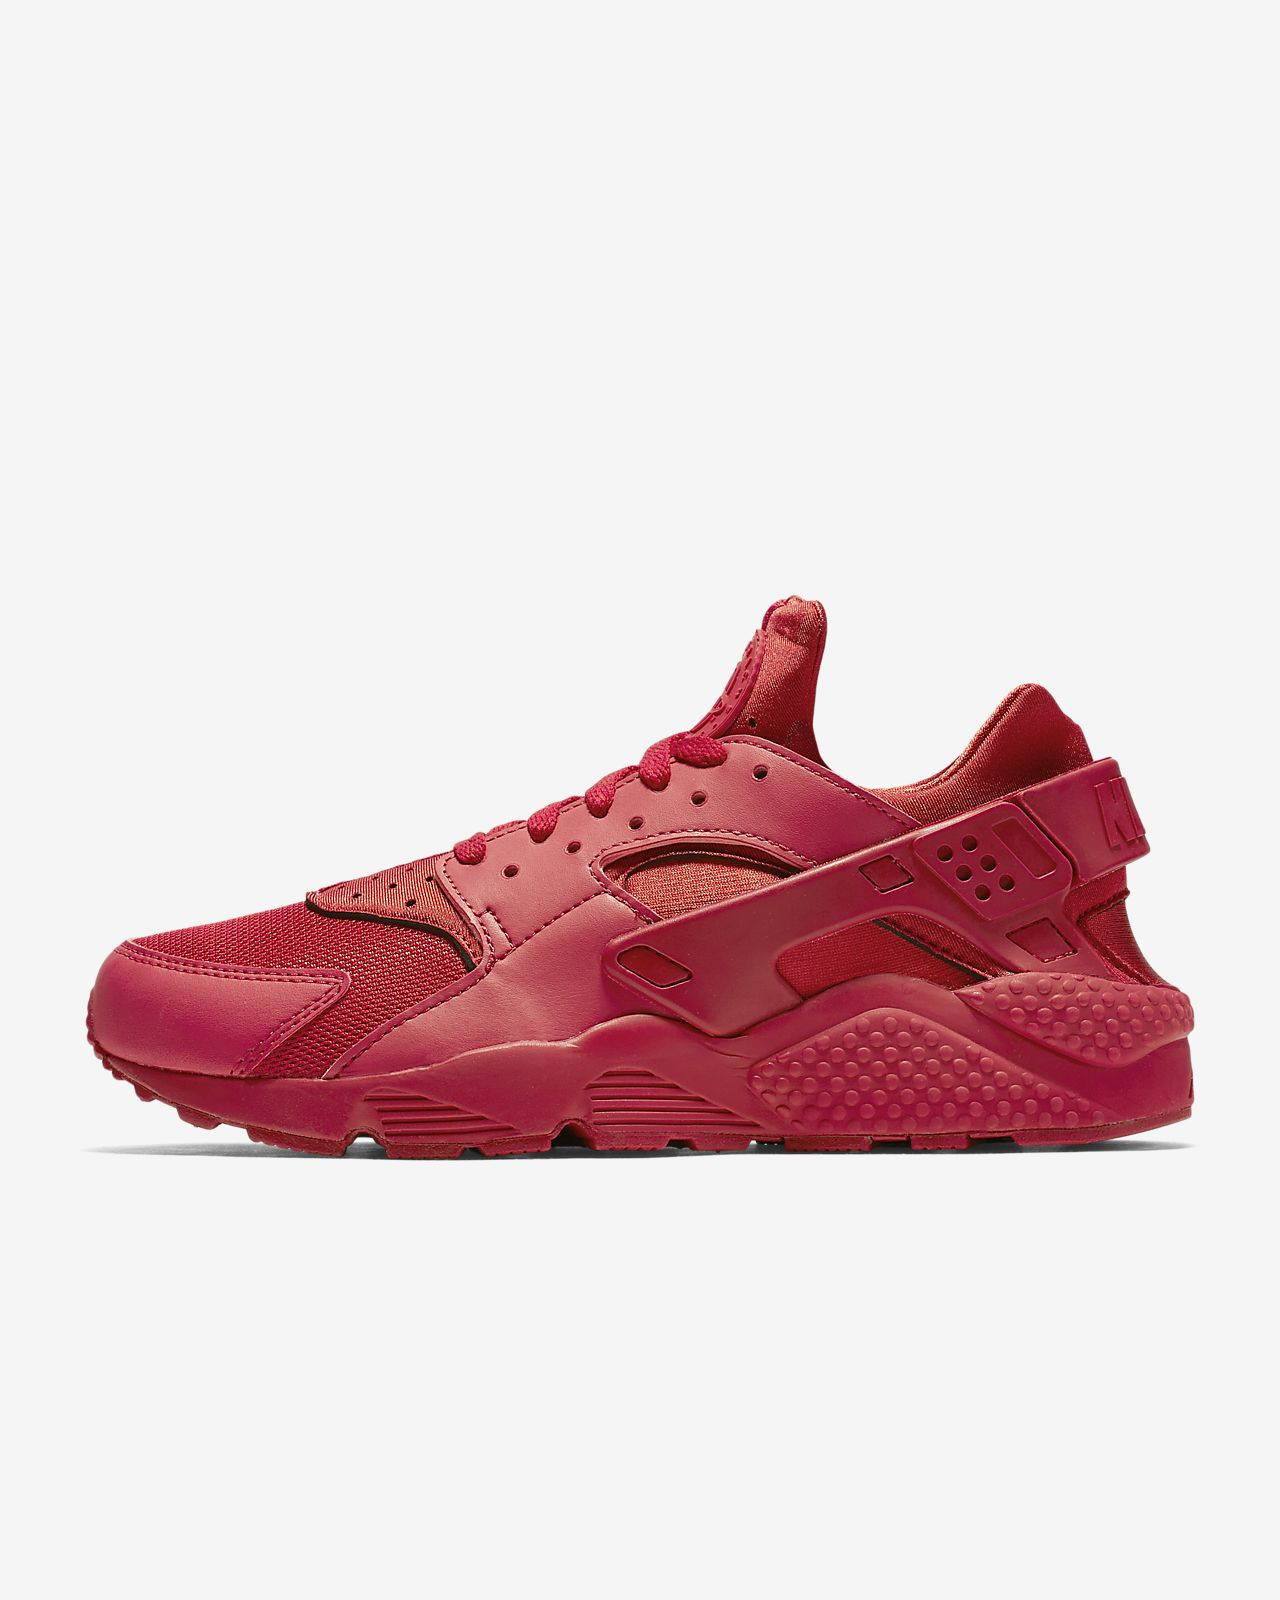 wholesale dealer 4d007 238e8 Nike Air Huarache Men's Shoe